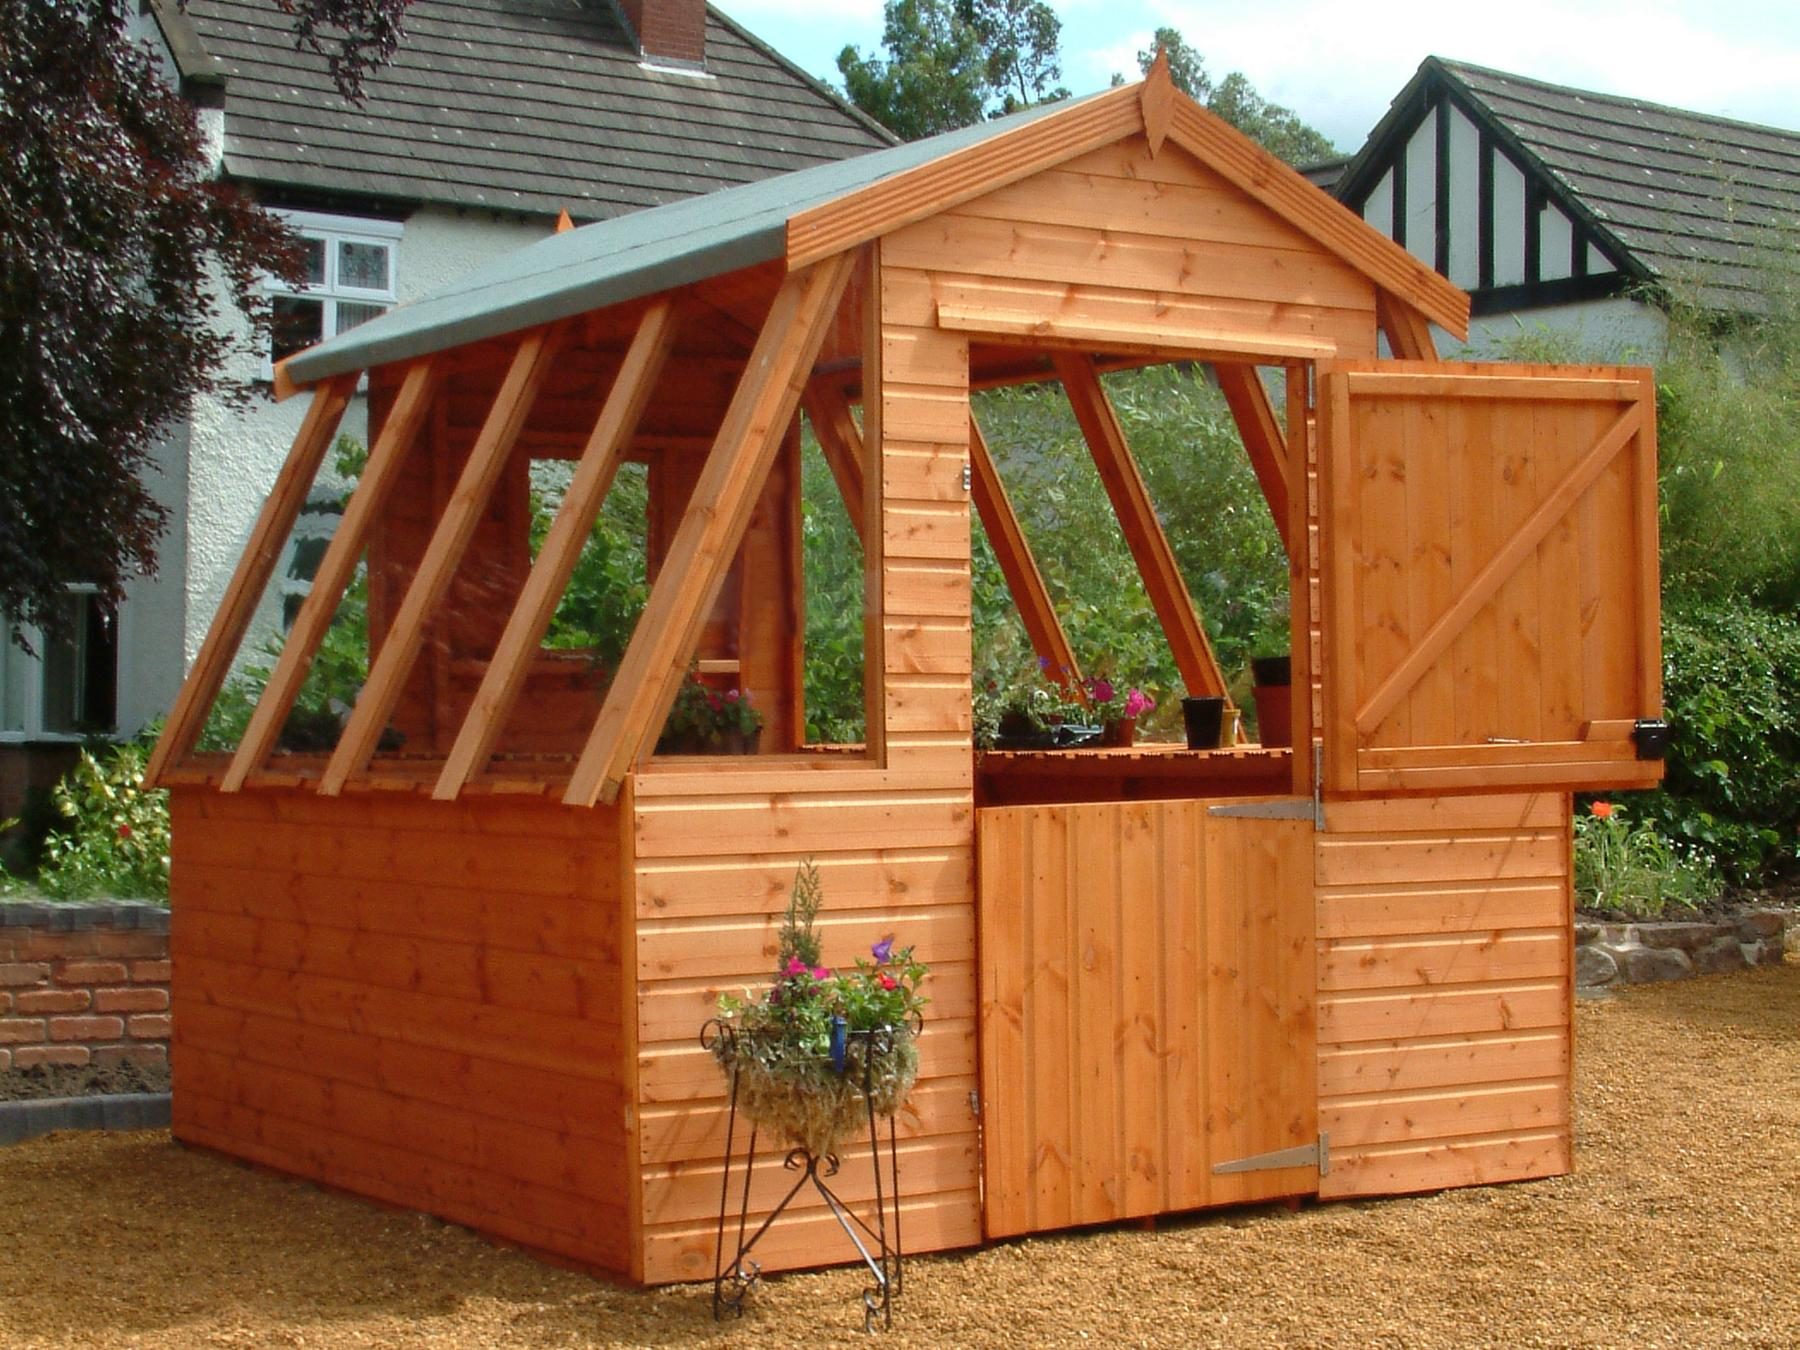 Potting sheds designs obtaining free shed plans on the for Shed design plans